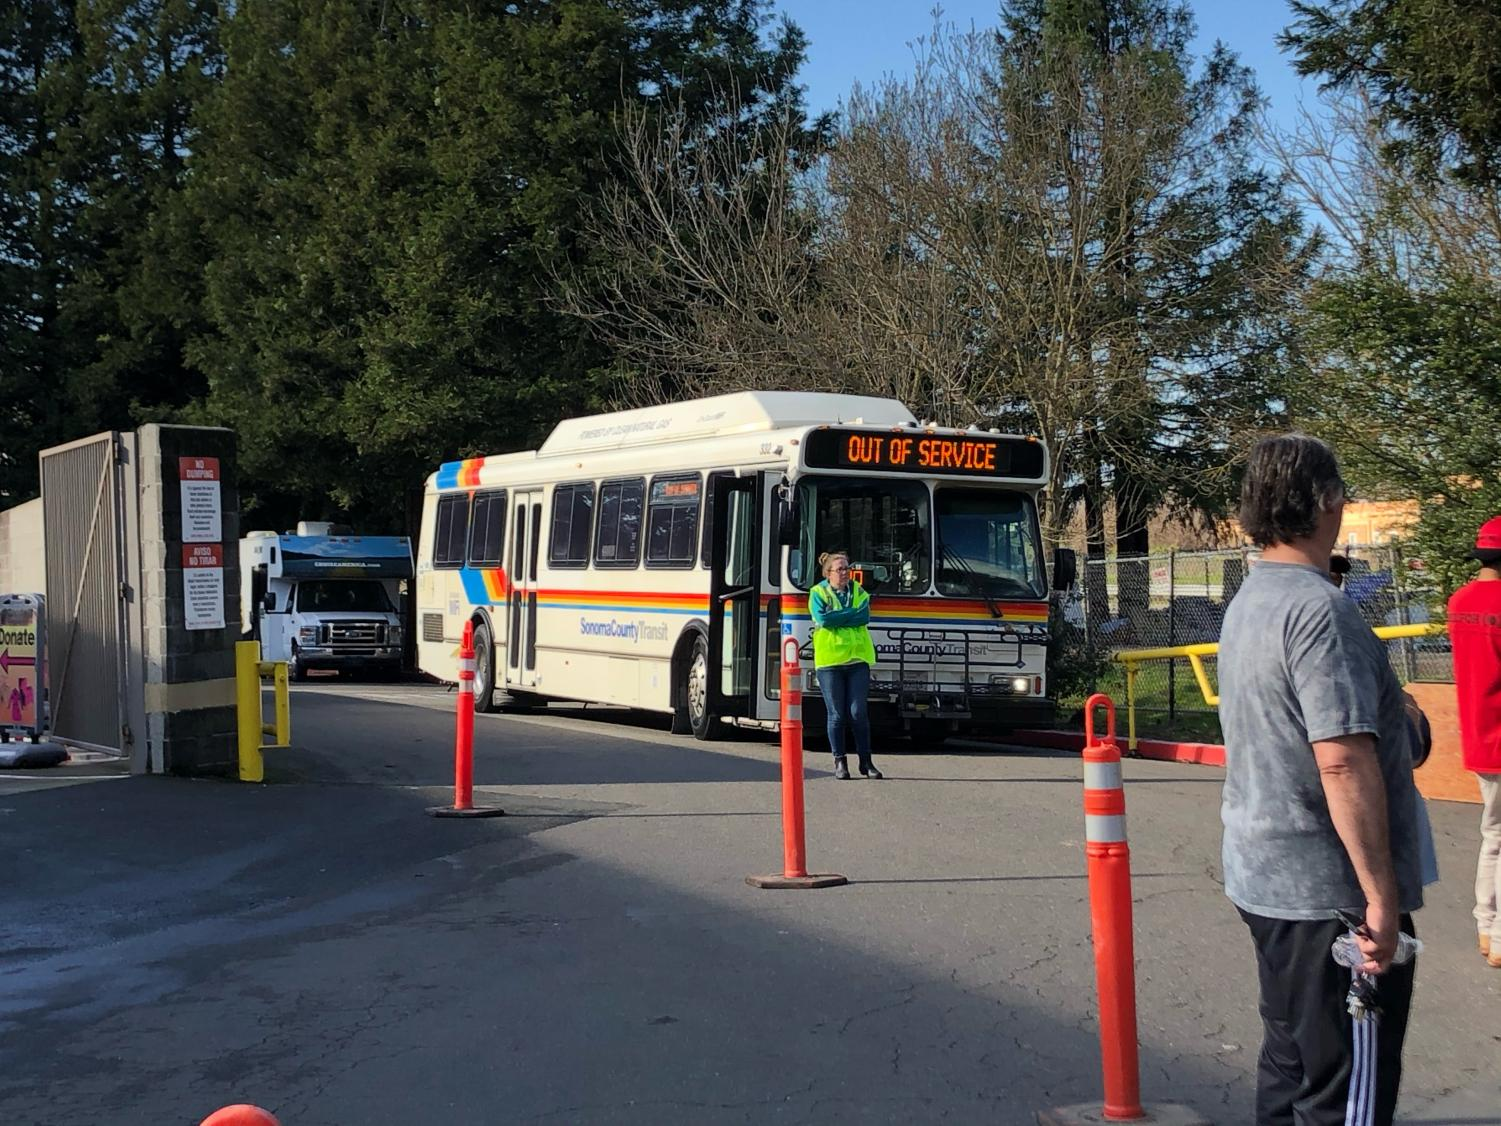 A county bus sits idle waiting to ferry homeless residents, who acquiesce to the county's requests, to their new outdoor camp at Los Guilicos.